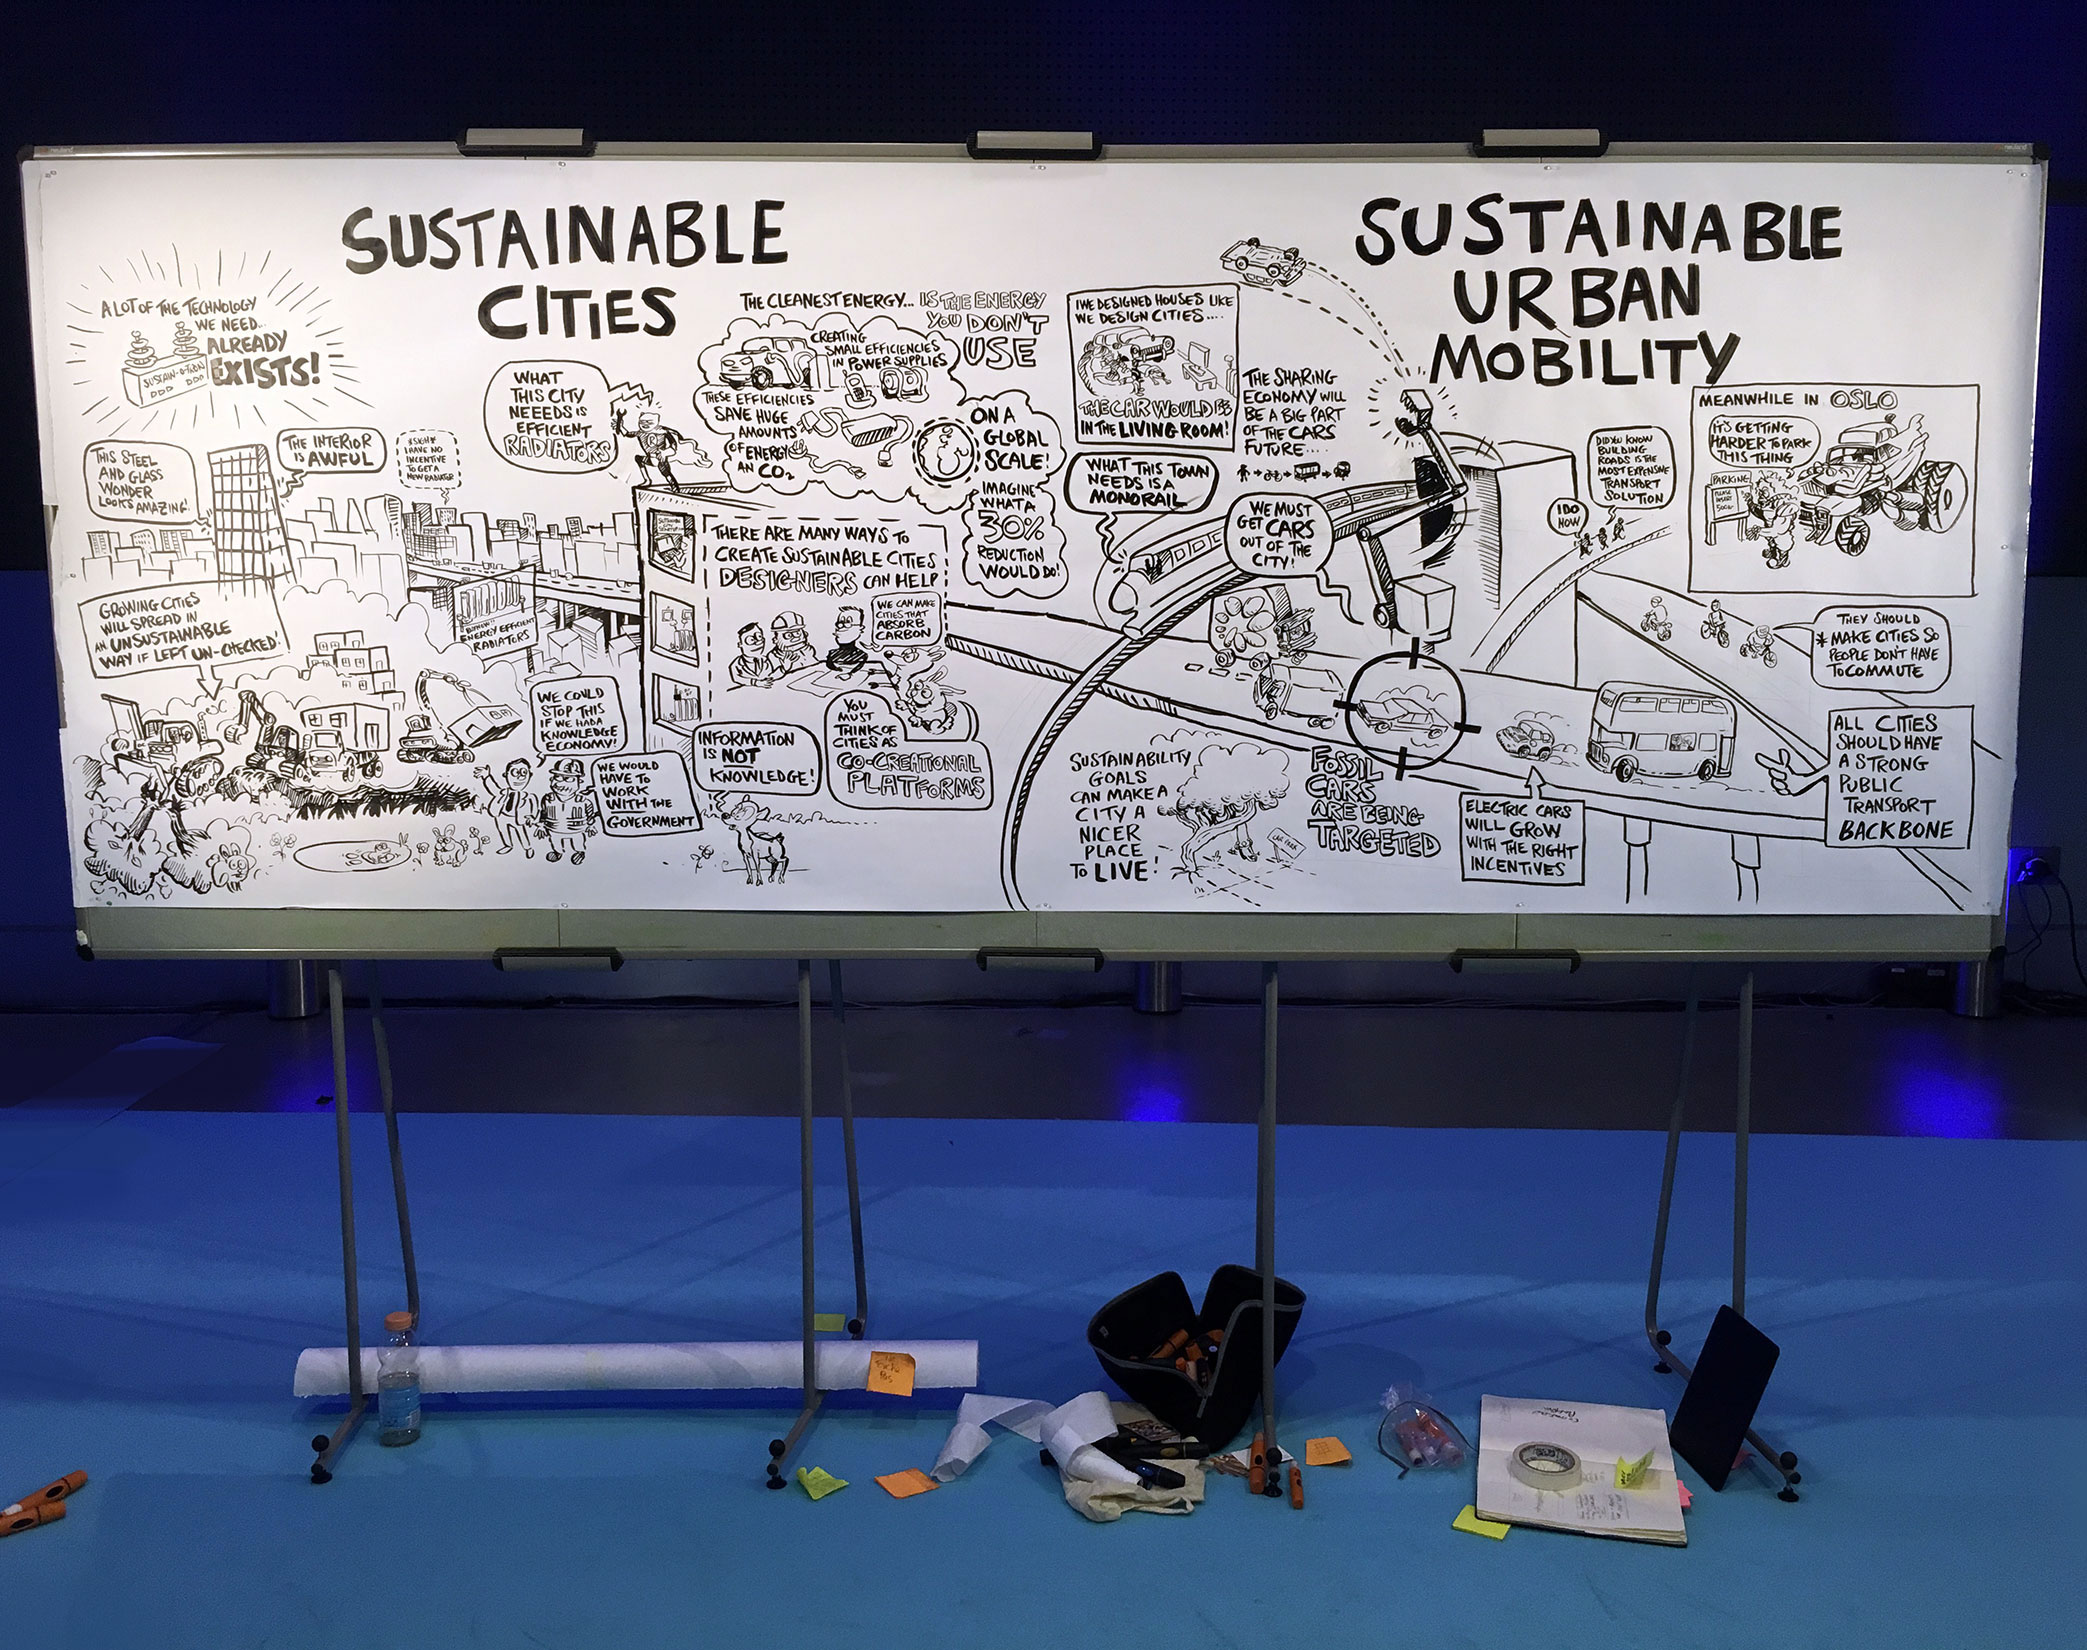 A Graphic Recording of Sustainable Development and Growth in Cities and Mobility at COP21 on the large sized drawing board